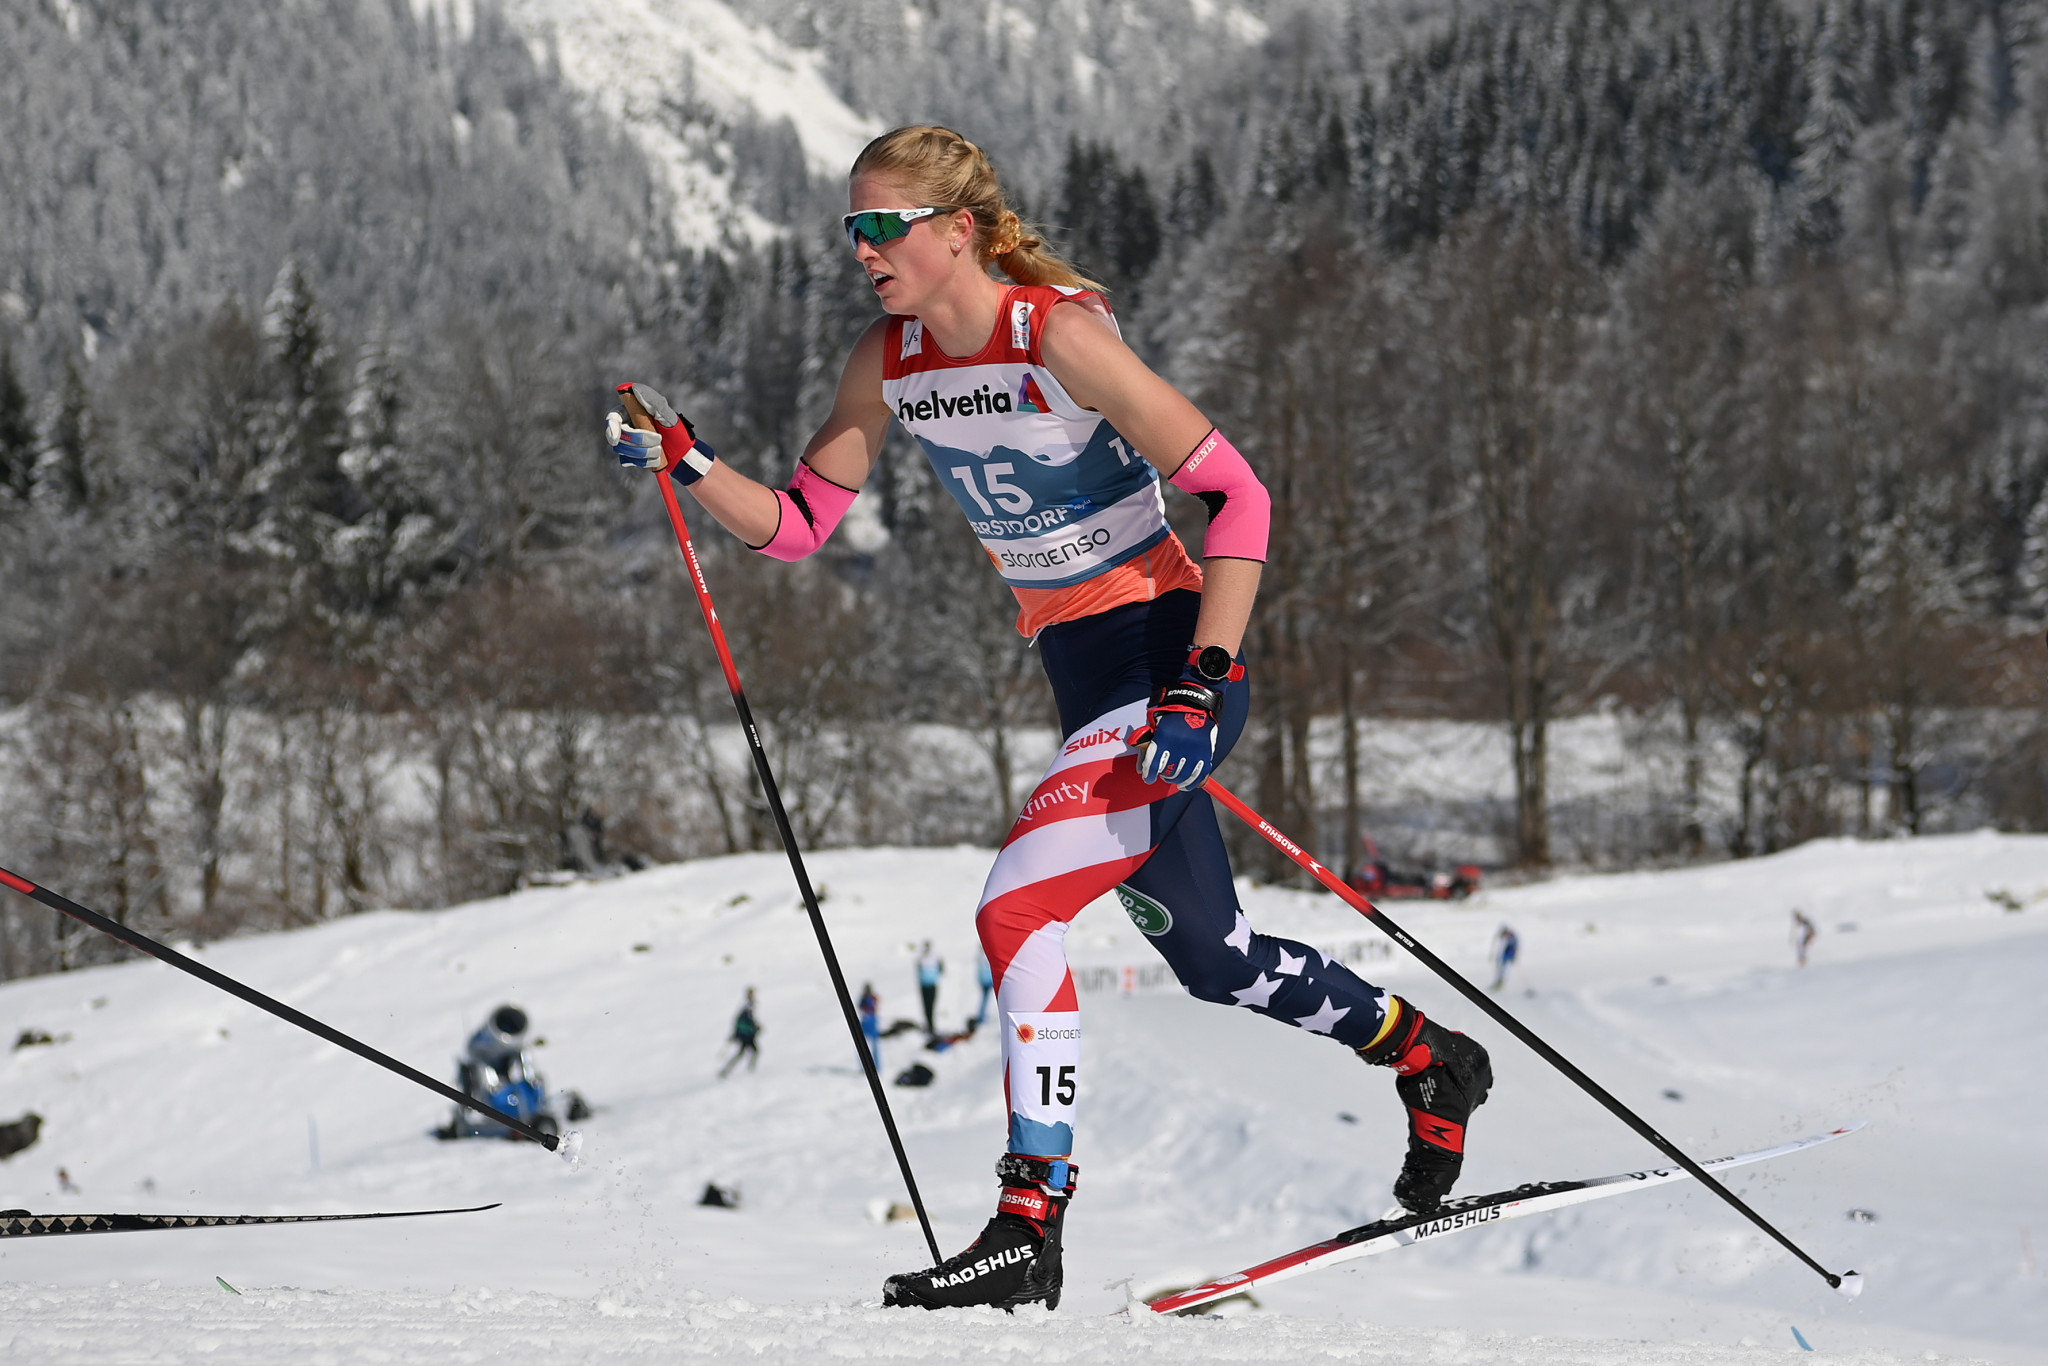 Decorated junior cross-country skier Swirbul aims to peak at maiden Winter Olympics